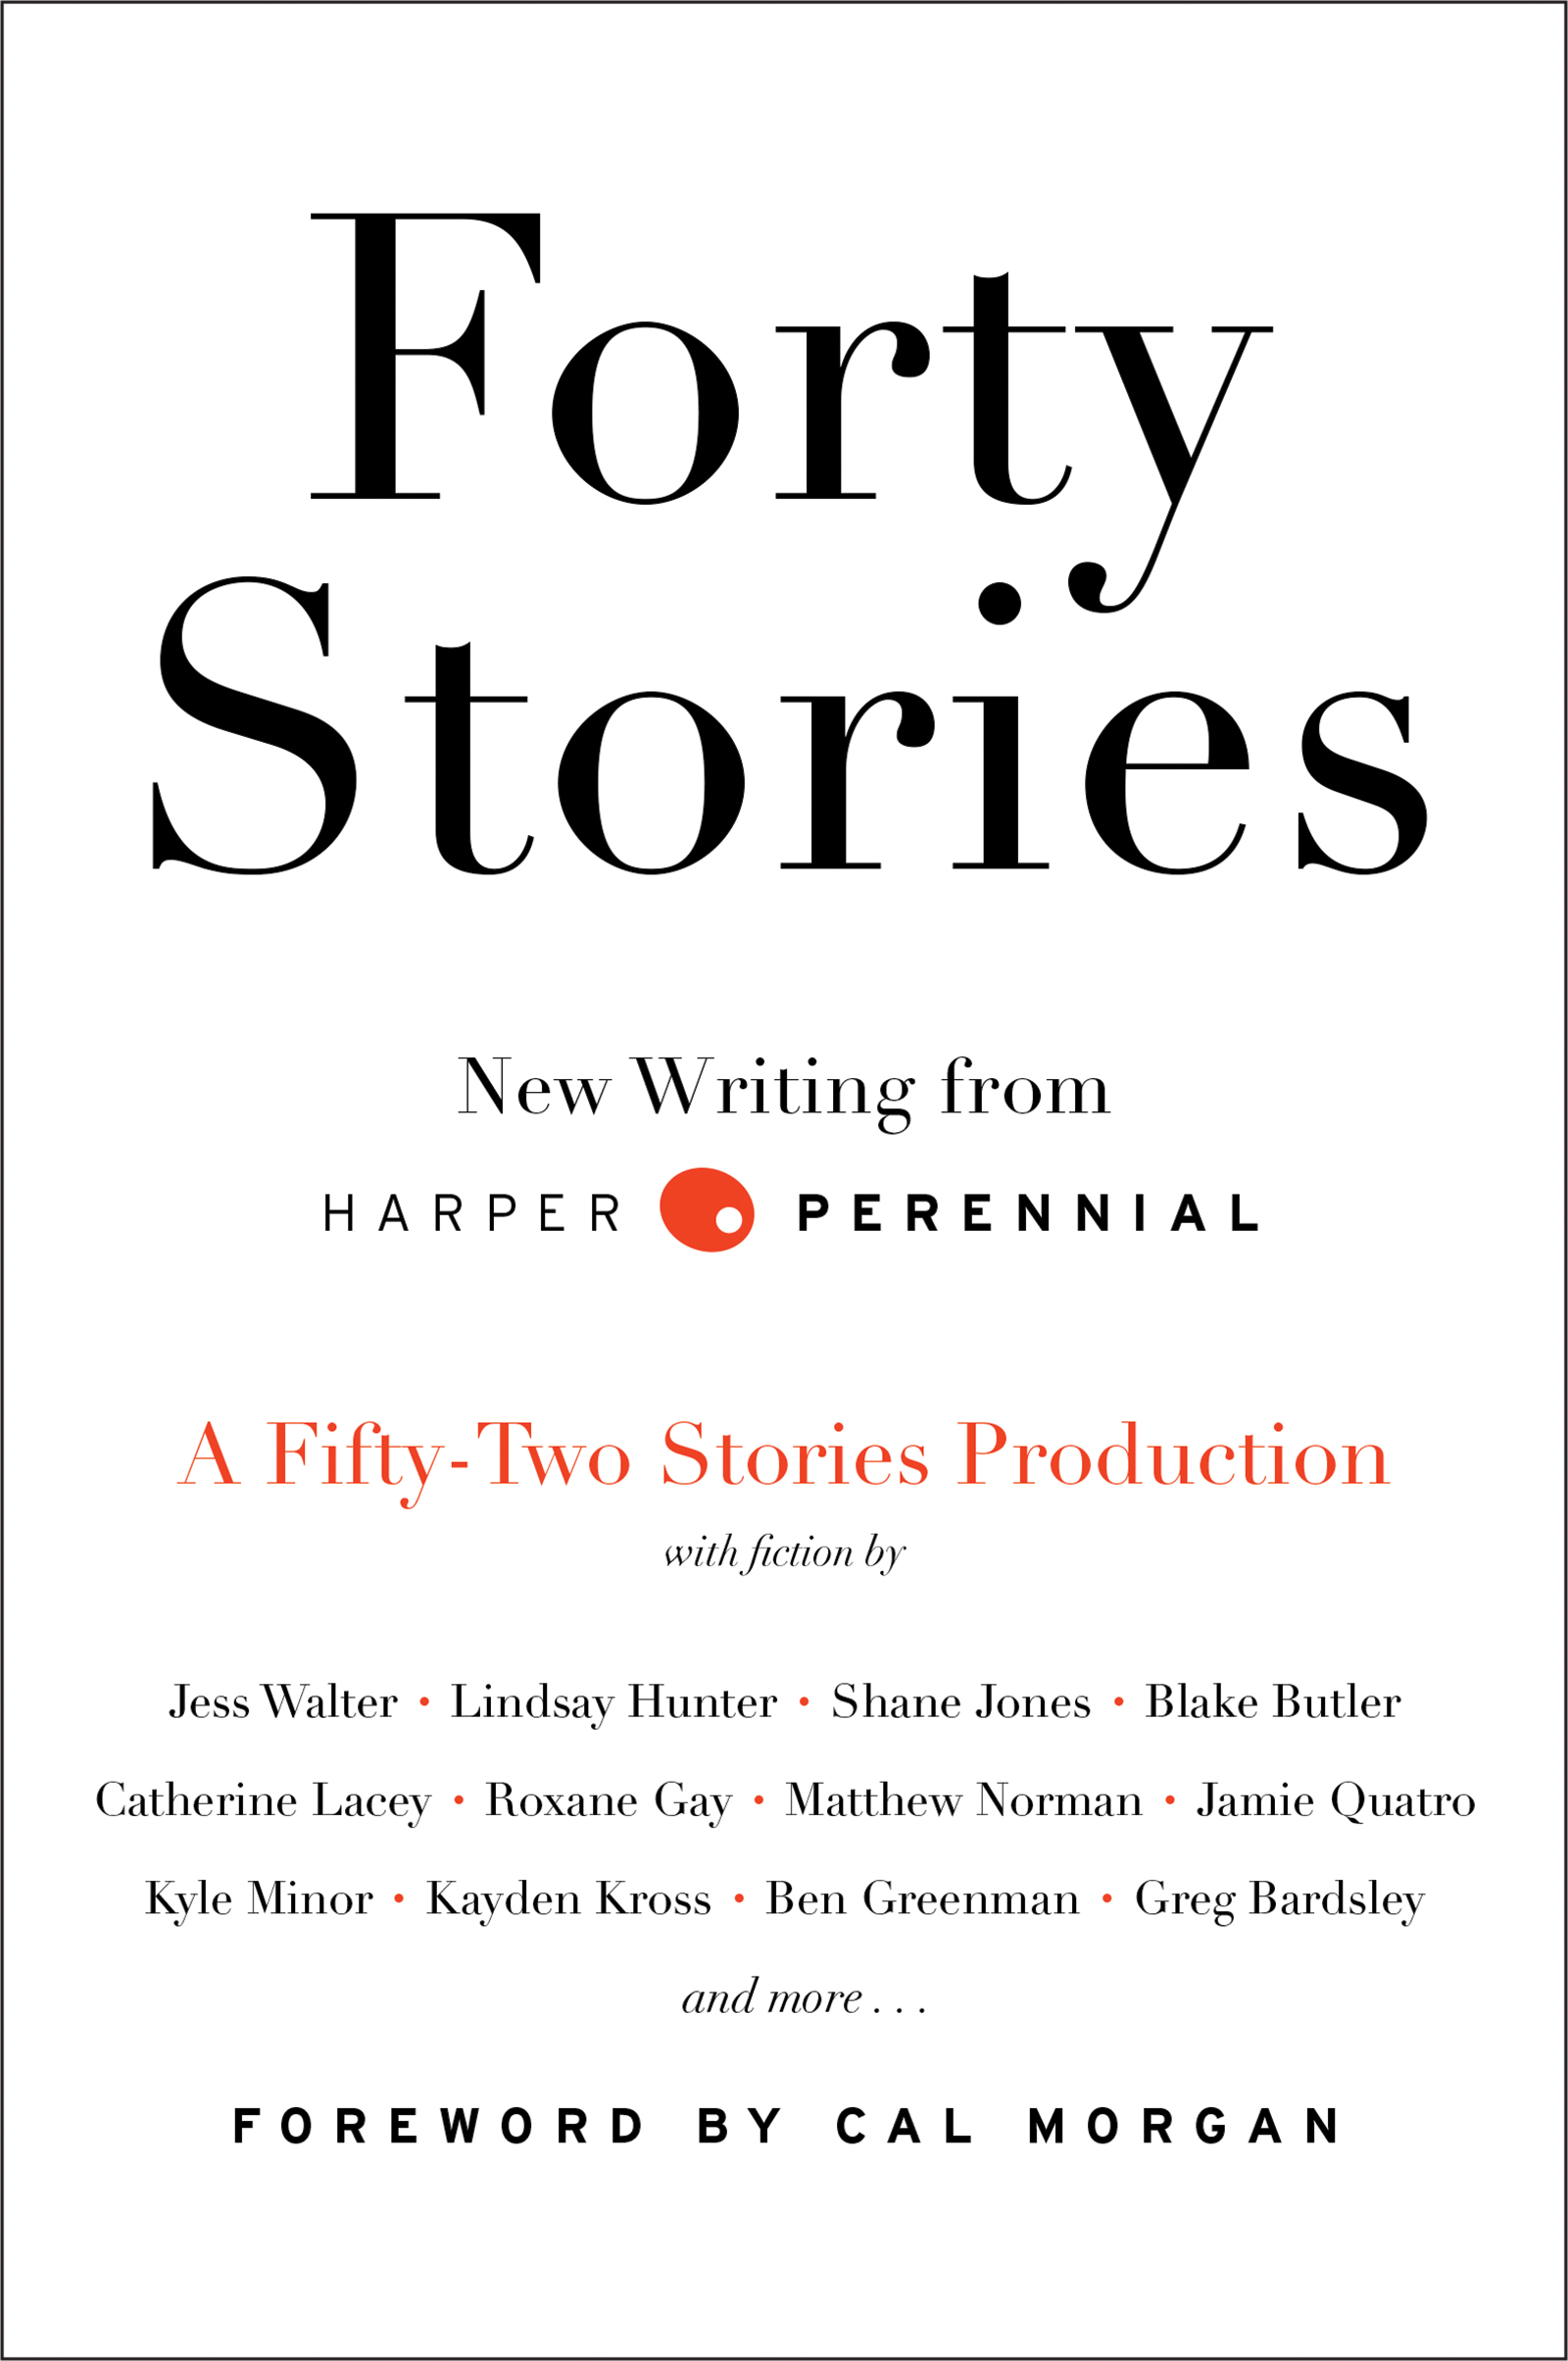 Forty Stories New Writing from Harper Perennial